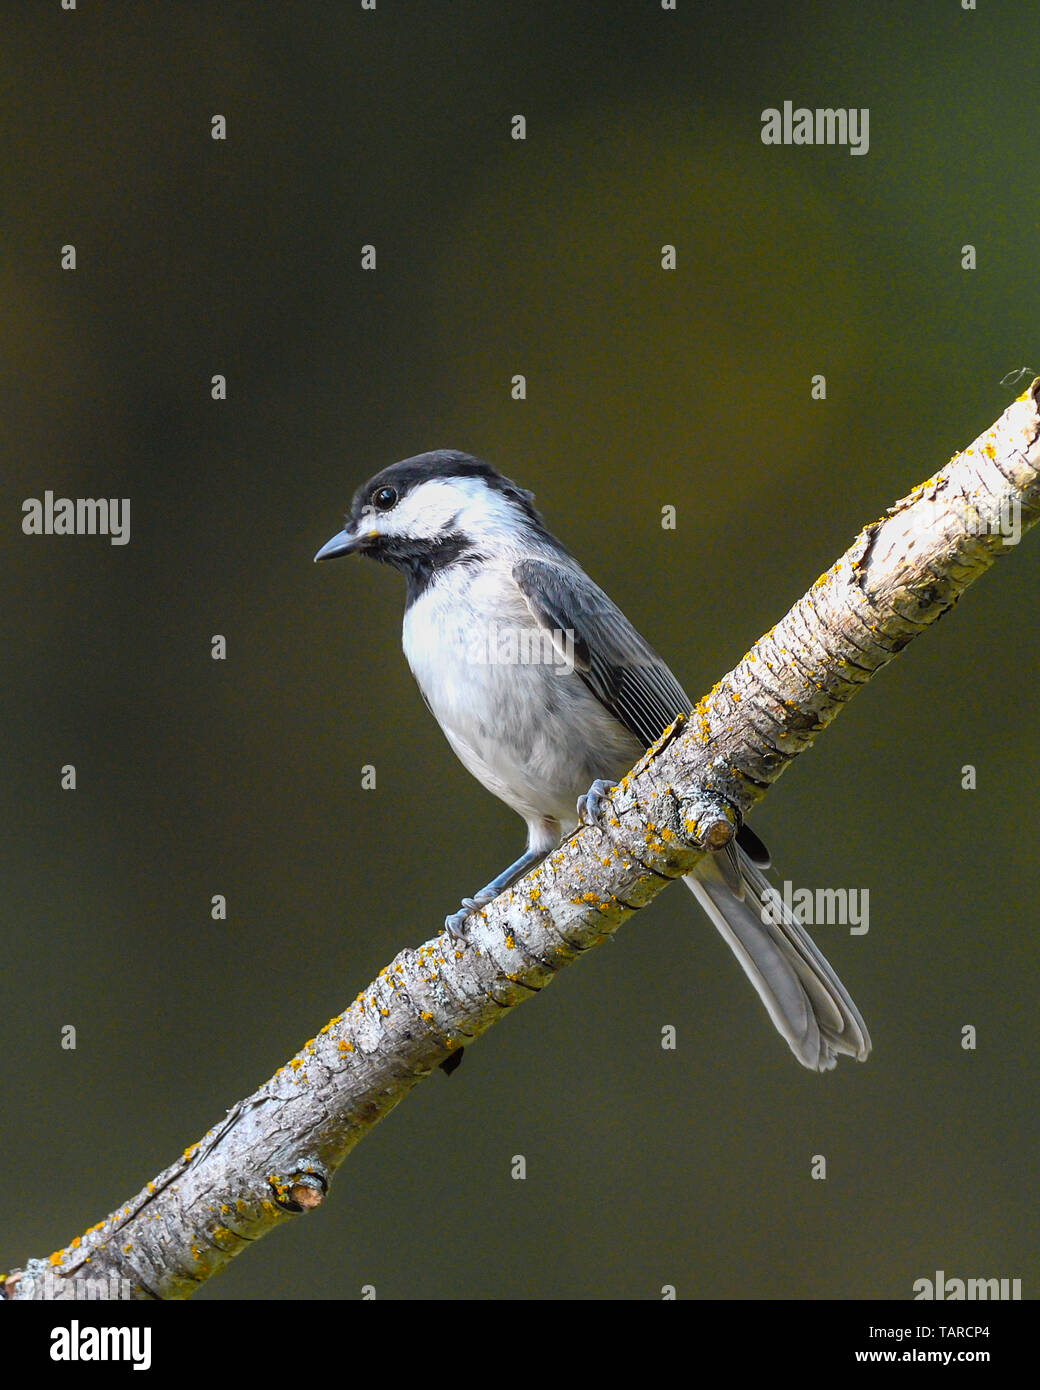 Carolina Chickadee - North American wild songbird - Stock Image